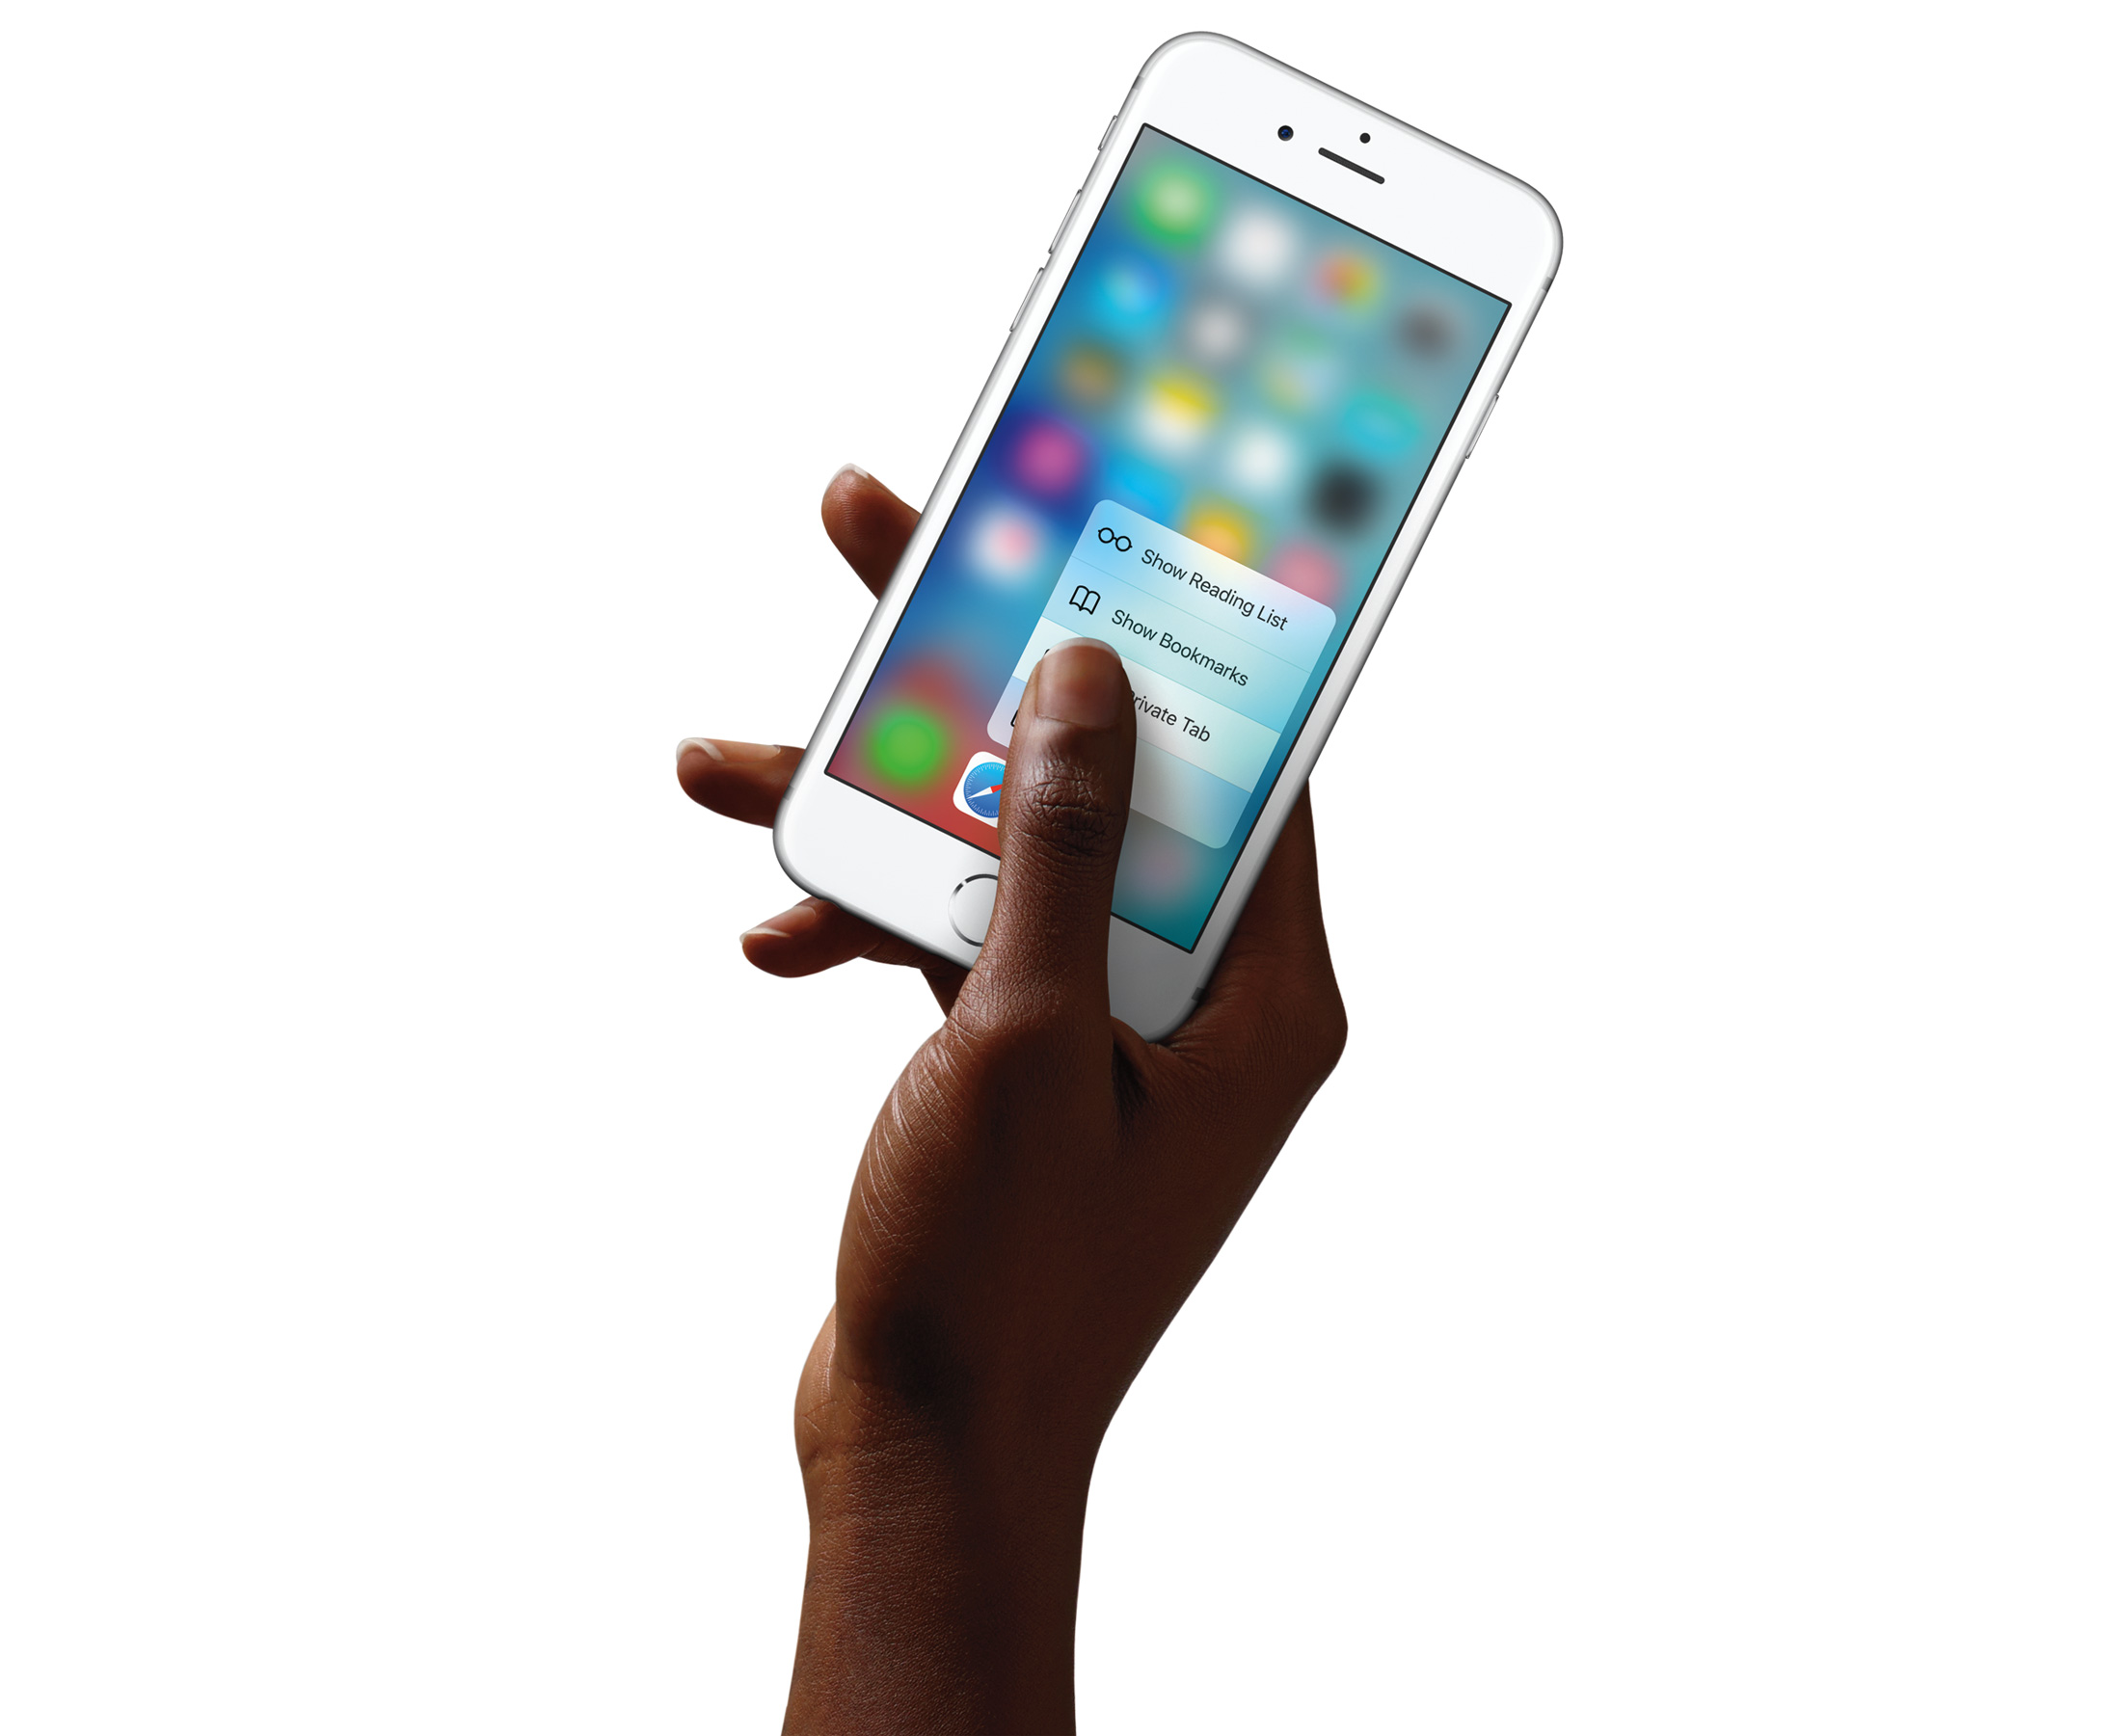 3D Touch new iPhone 6s